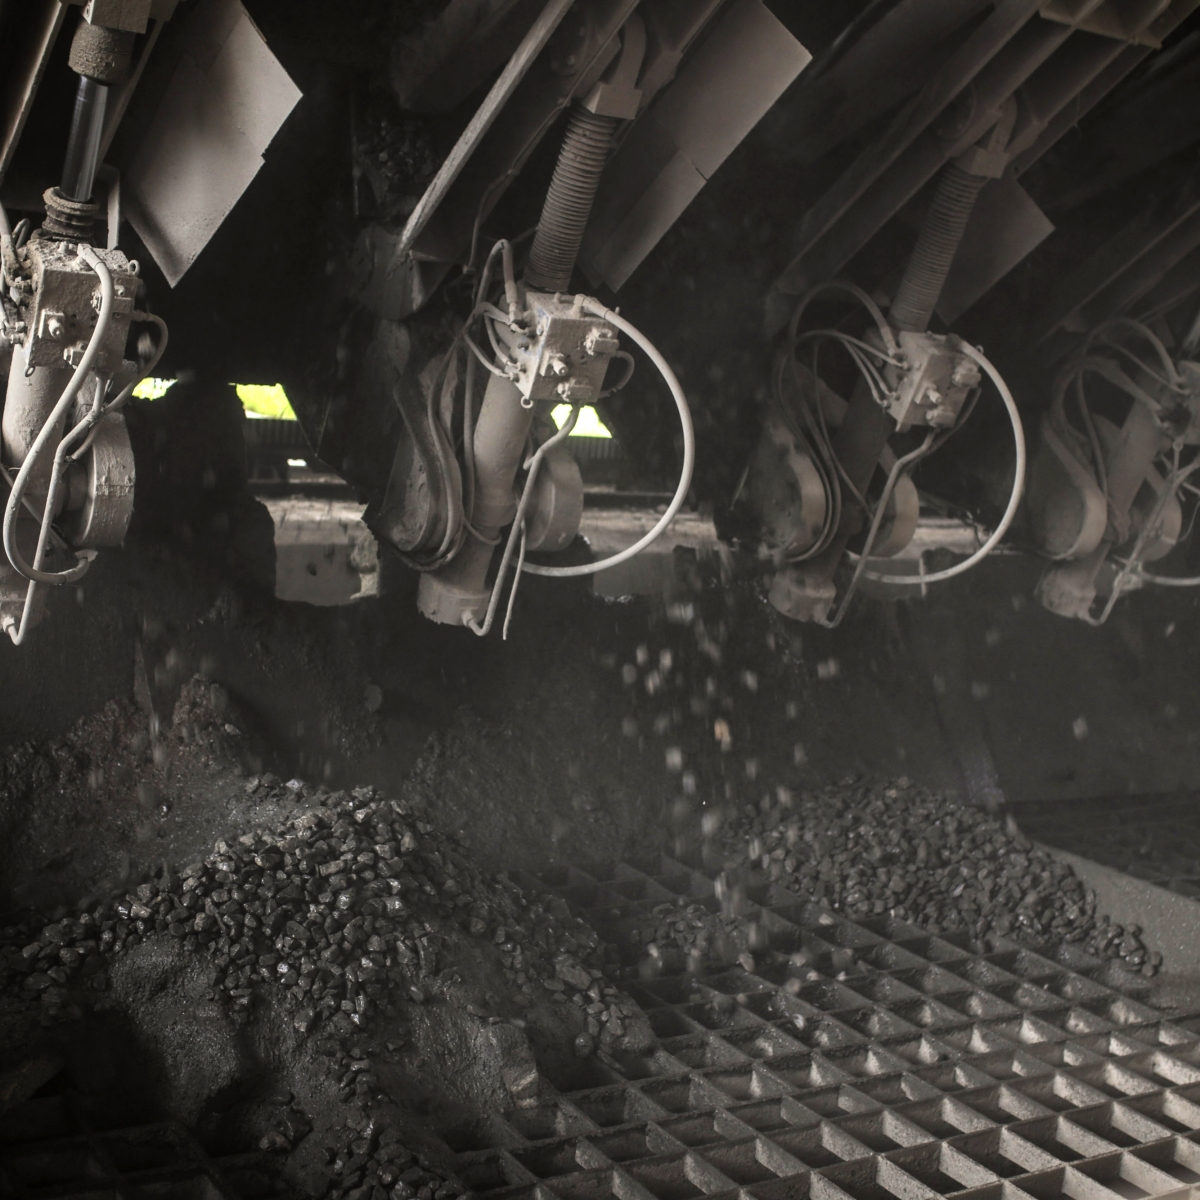 Royalties, Cess And Logistical Costs Are Hurting This Sponge Iron Maker